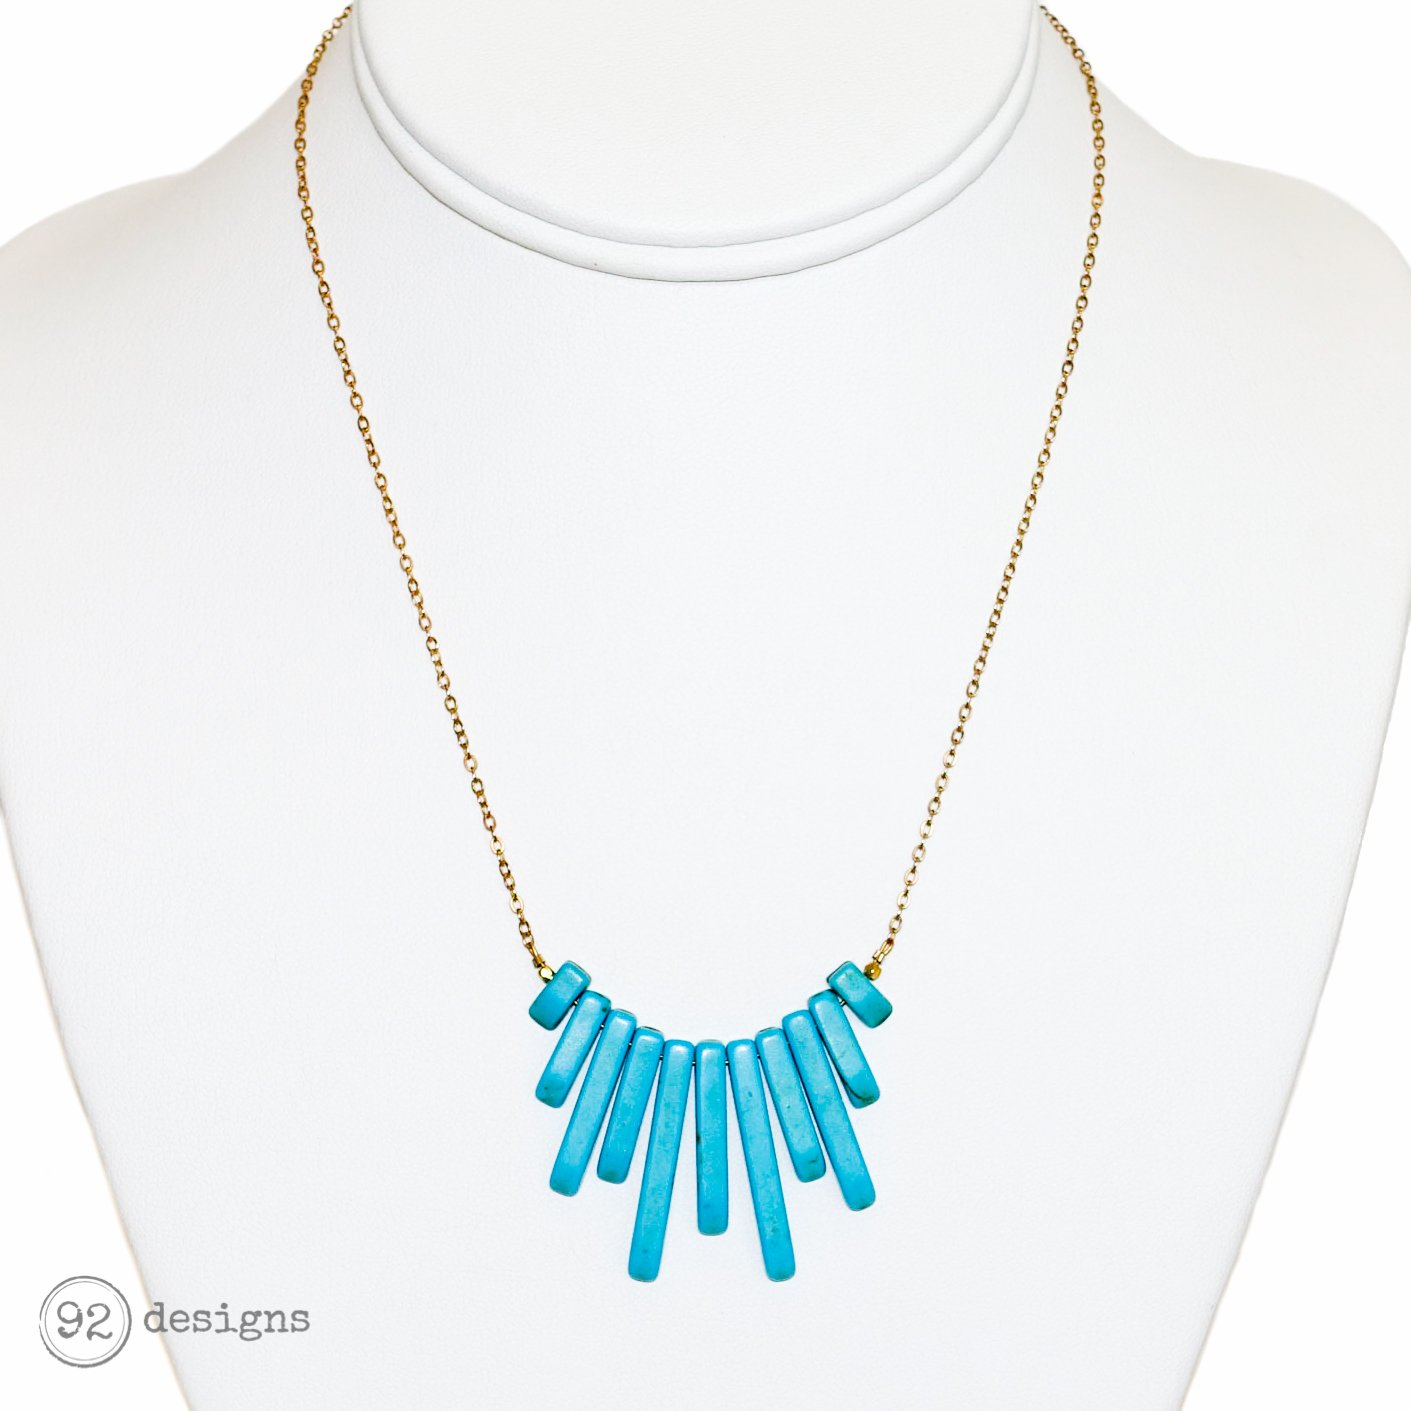 west blossom qvc com product necklace page squash jewellery american spiderweb turquoise